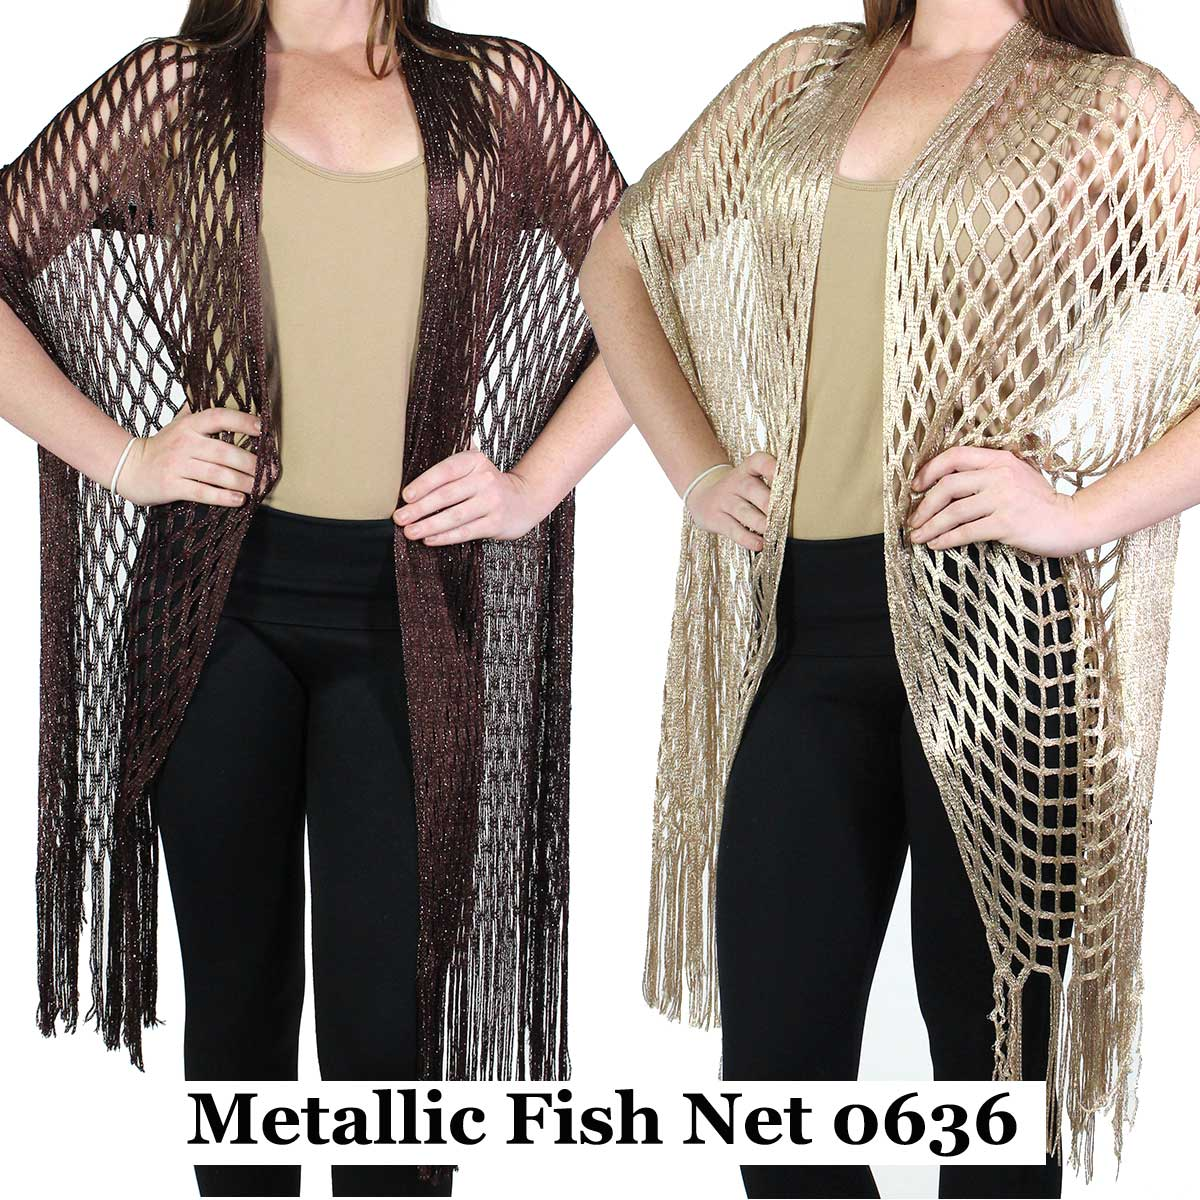 Shawls - Metallic Fishnet 0636